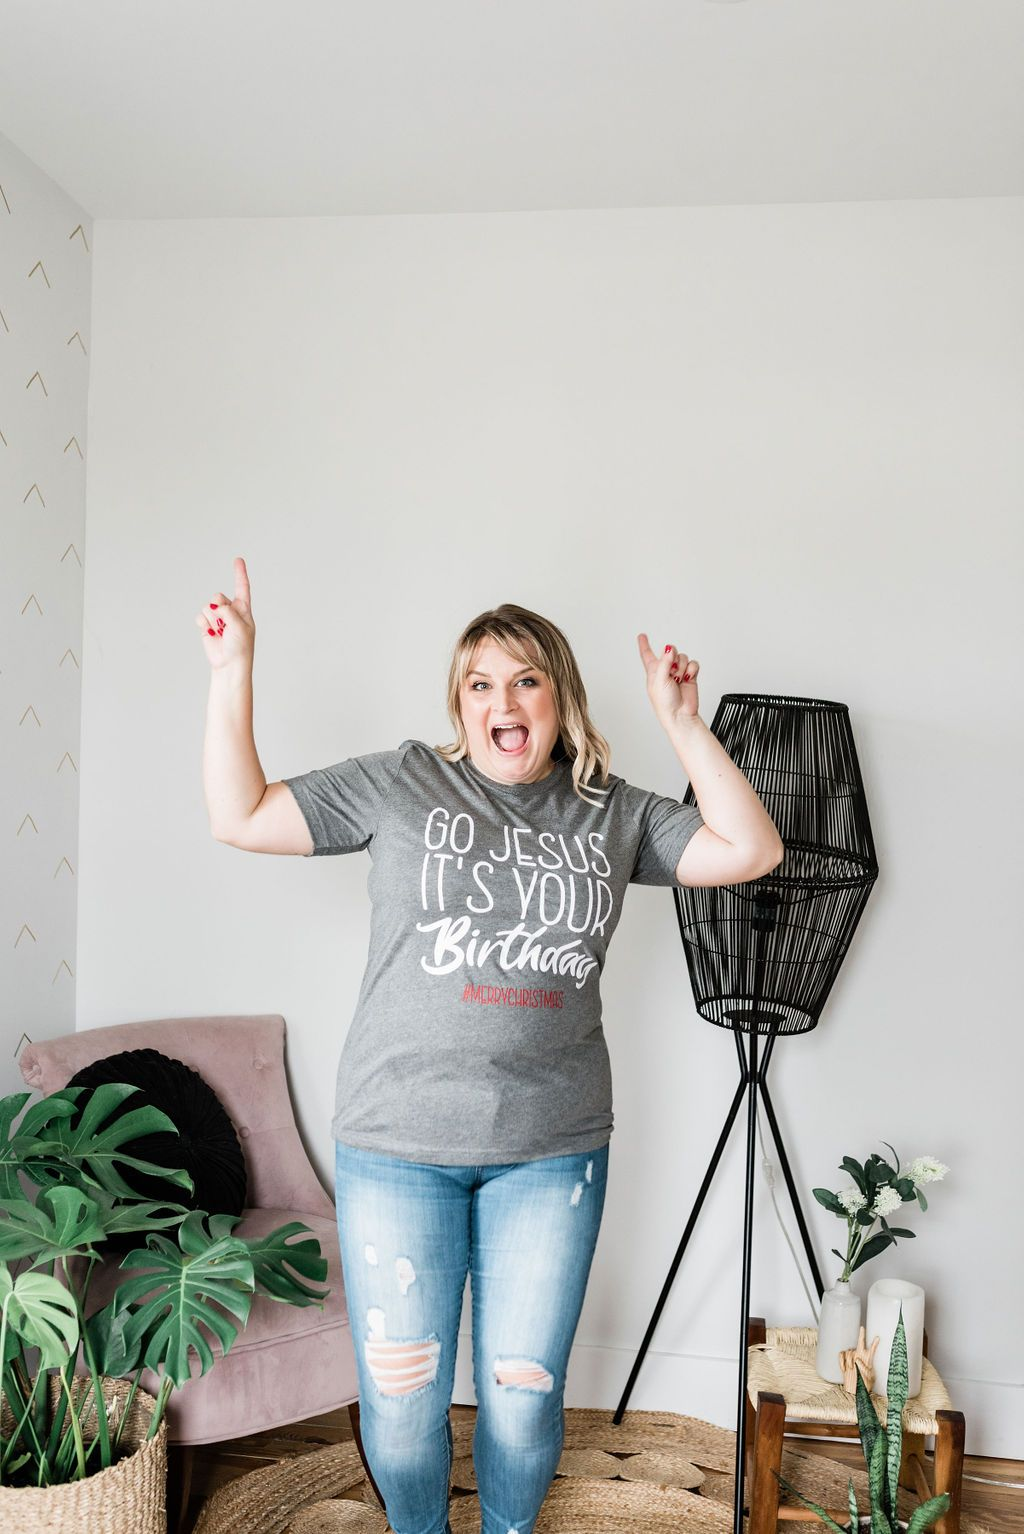 Go Jesus, It's Your Birthday Graphic Tee - Boutique 1780